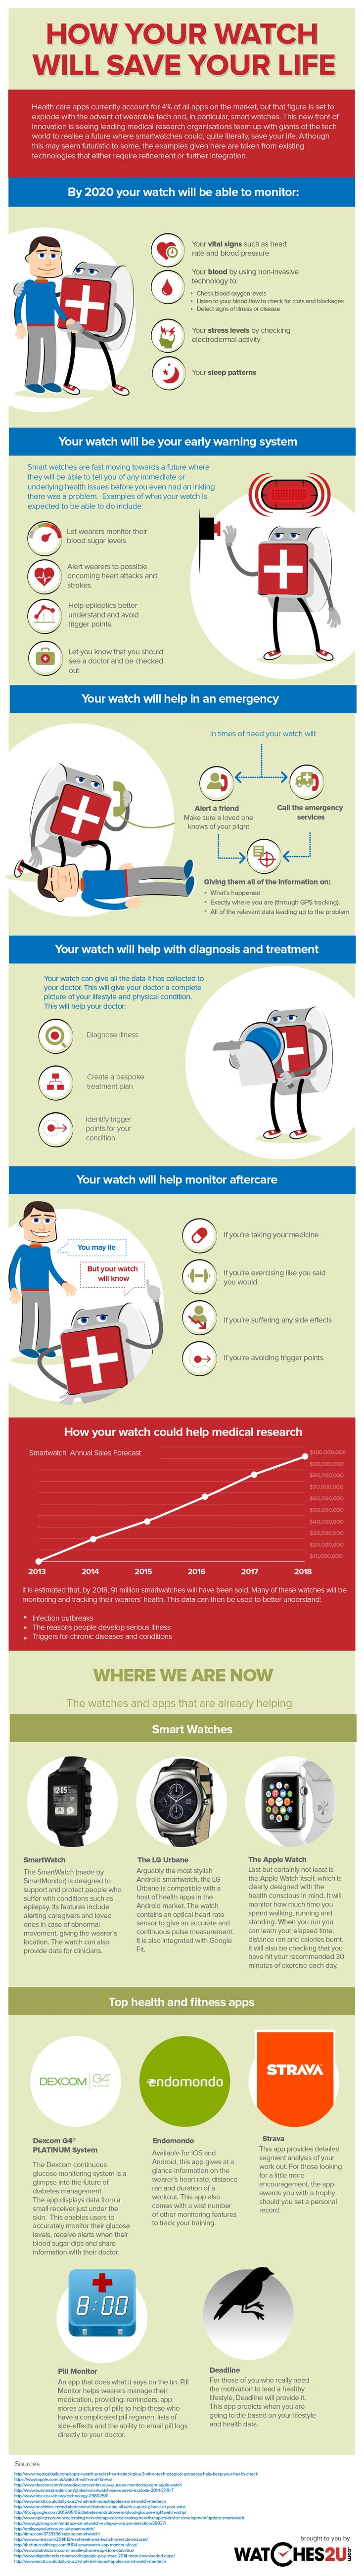 Future Role of Smartwatches in Personal Health (Infographic) #digitalhelath #smartphones #infographic